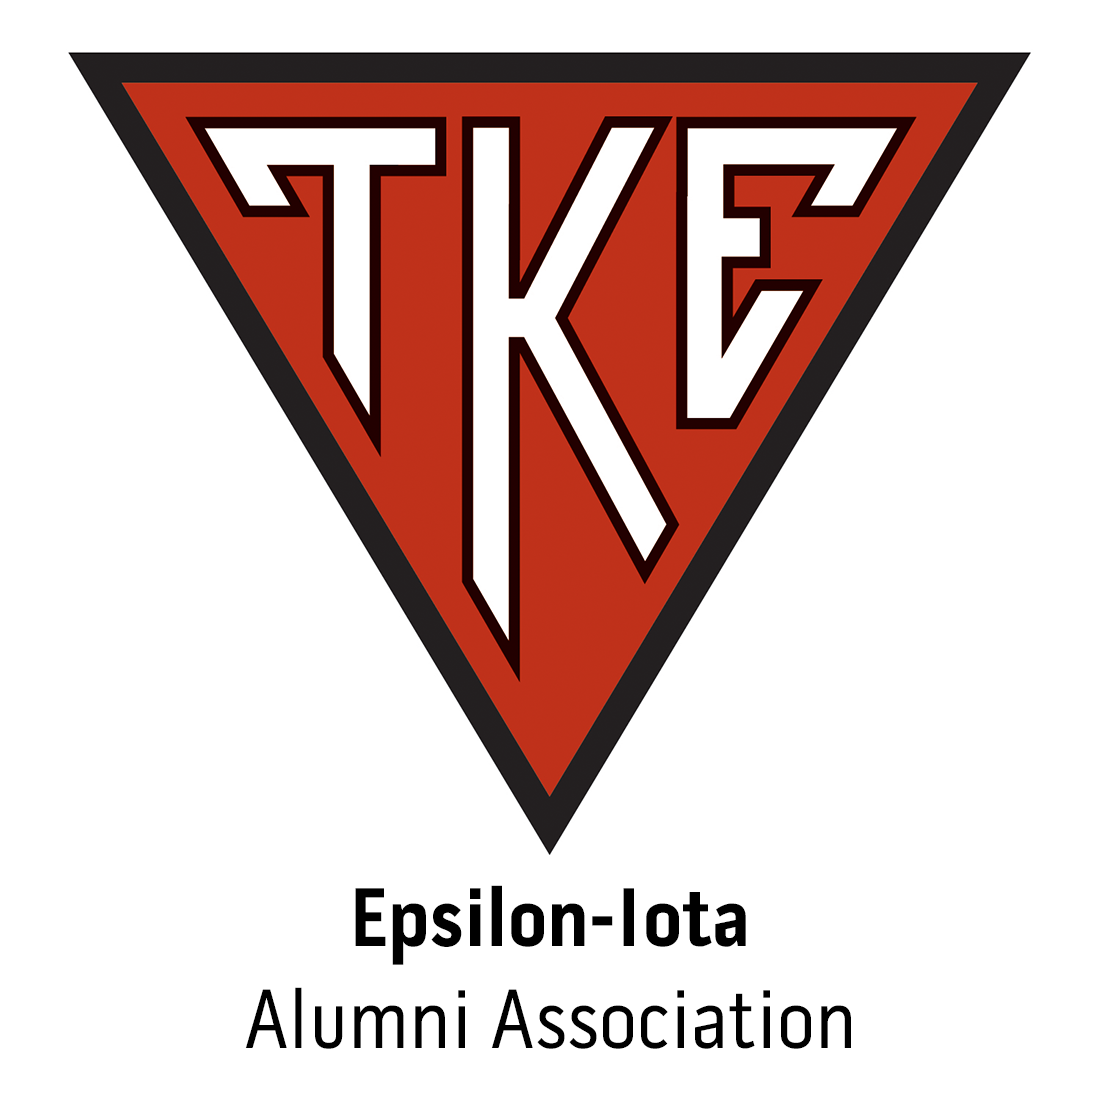 Epsilon-Iota Alumni Association at Youngstown State University